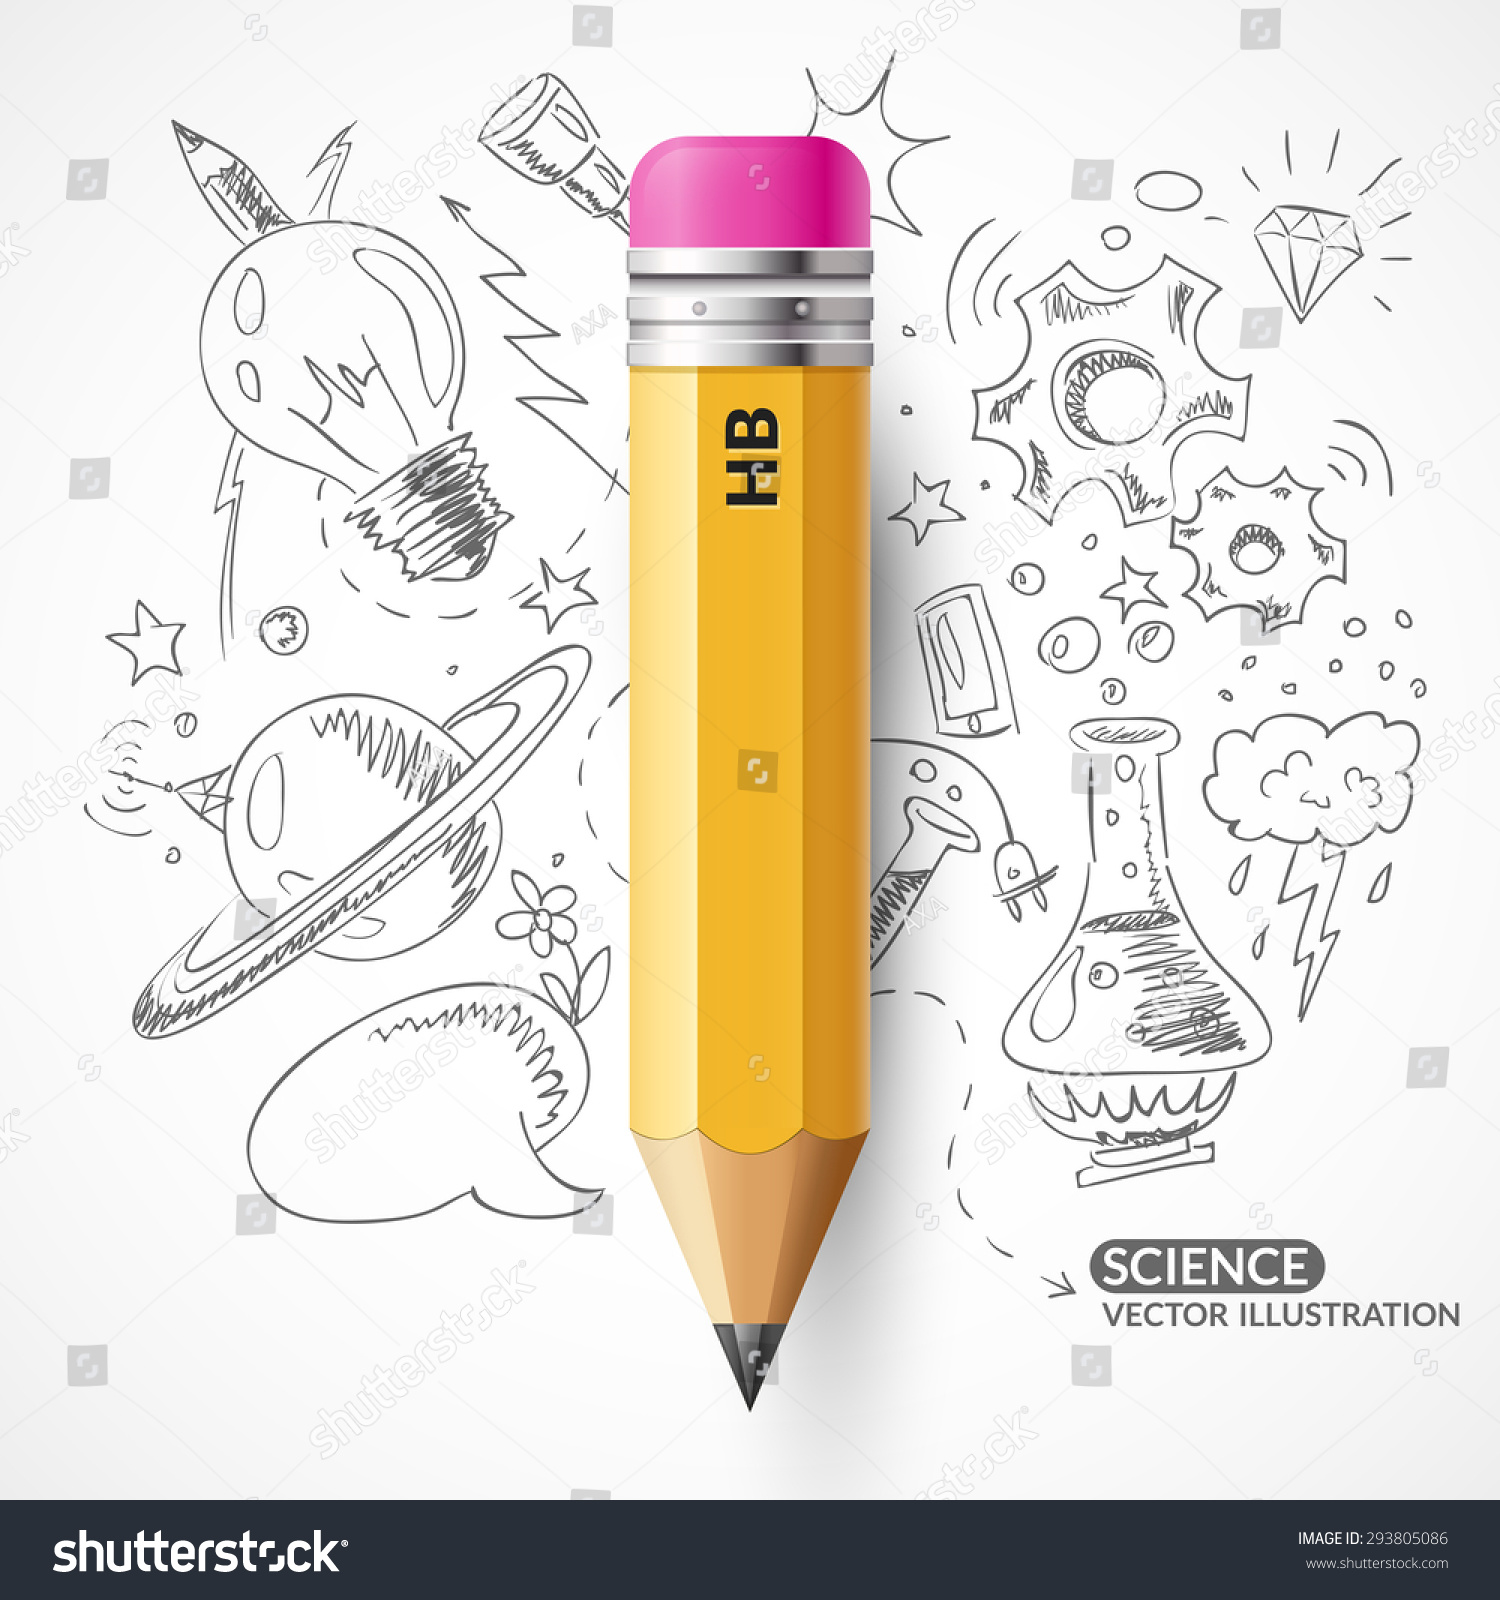 A vector illustration with a simple pencil Yellow pencil on the background of the sketch